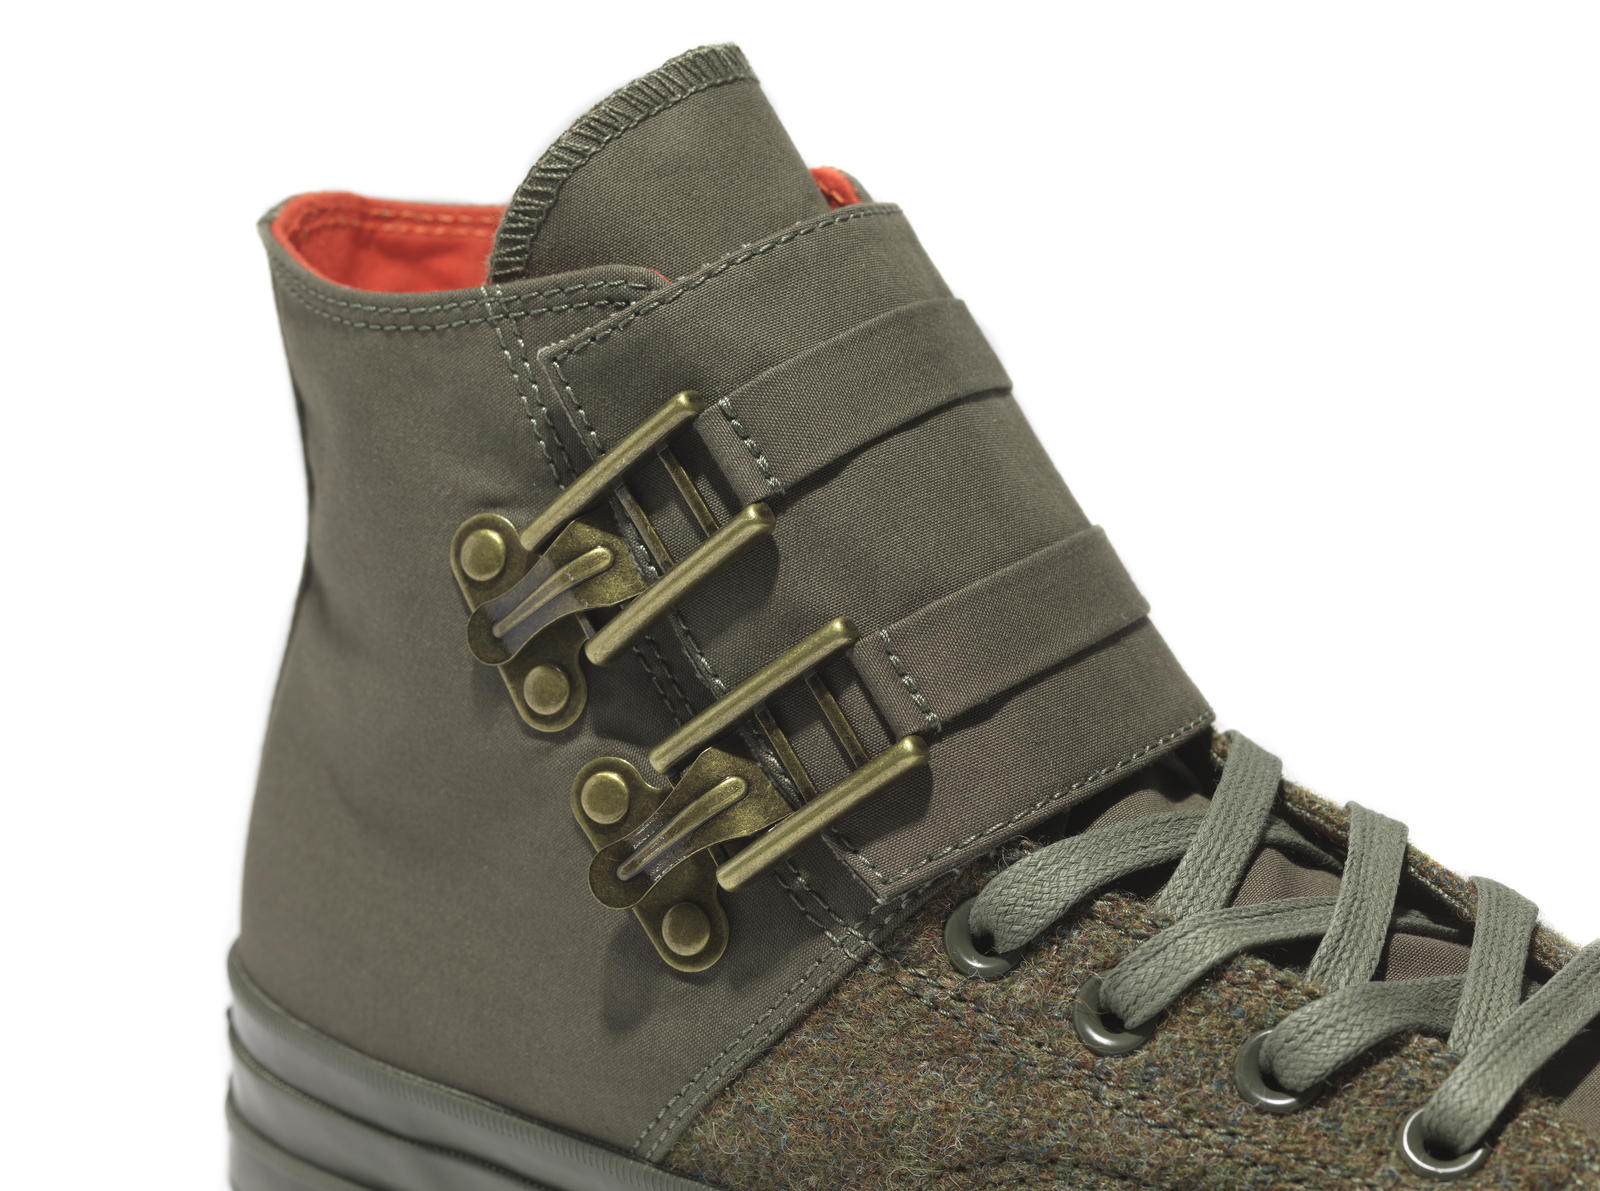 47fd01a6c70f Fh16 Fs Ctas70 Nigel Cabourn Green Detail1 153333 C. The new release  features a Ventile ® and Harris Tweed ...